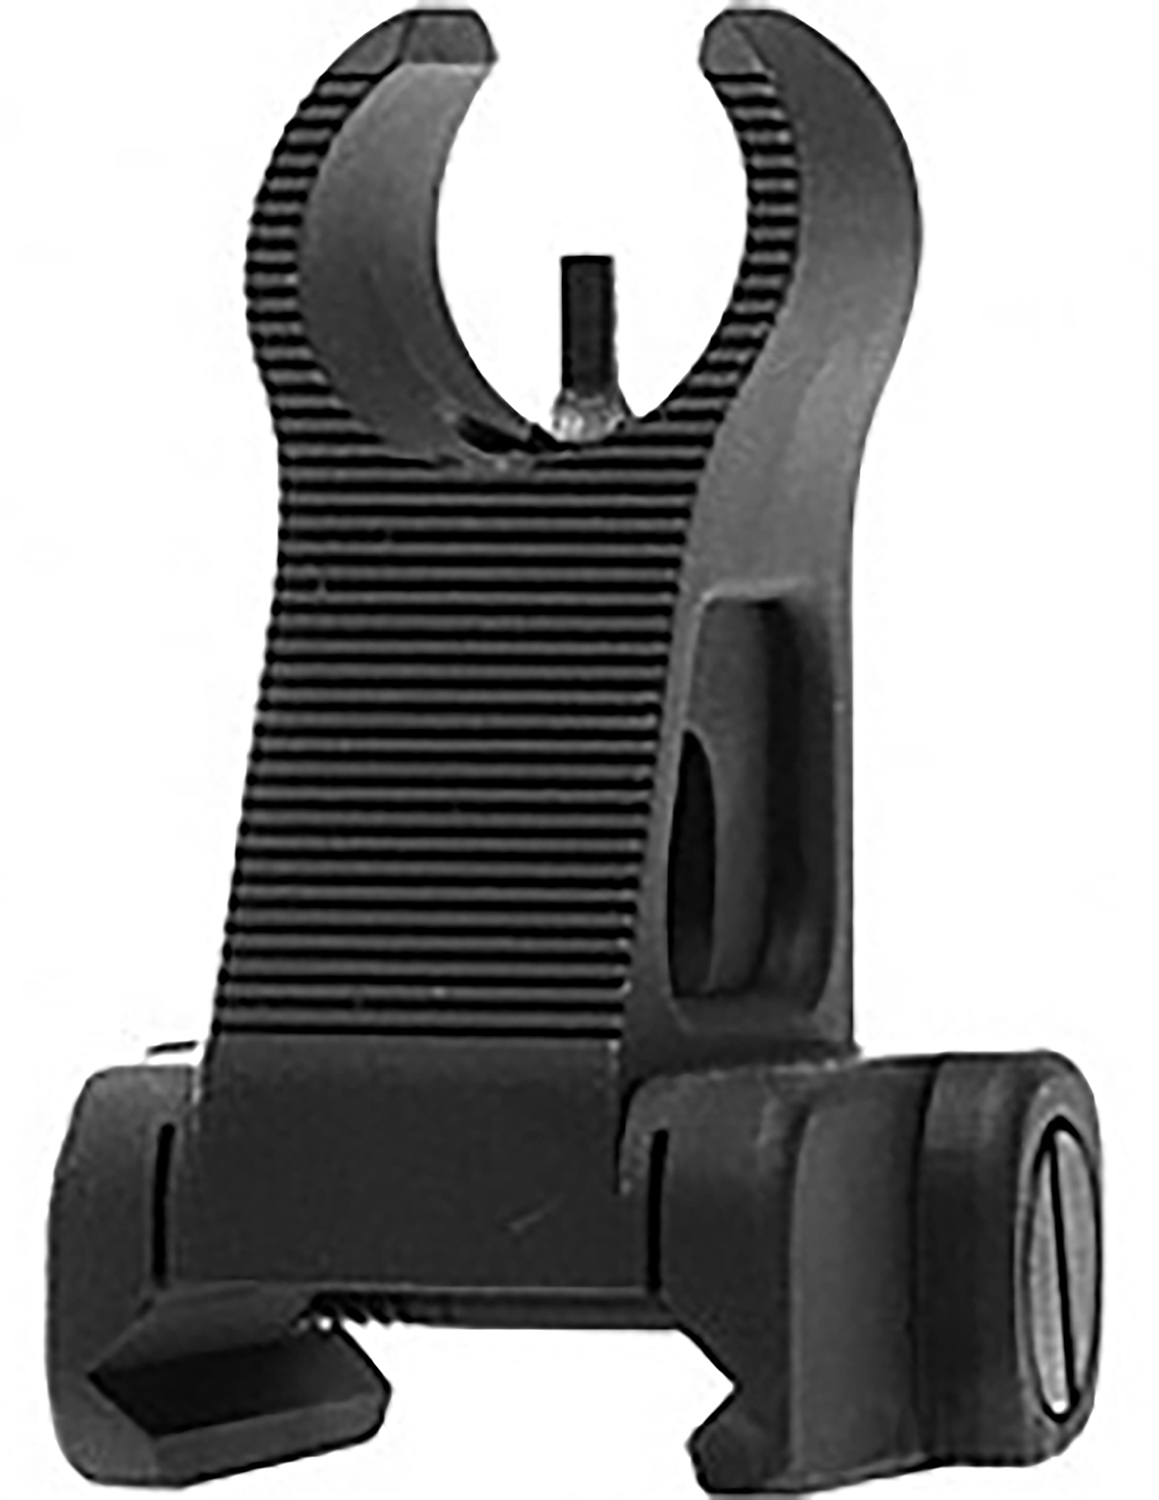 Troy Ind SSIG-FBS-FHBT-03 BattleSight Front Sight Fixed Black Hardcoat Anodized for HK